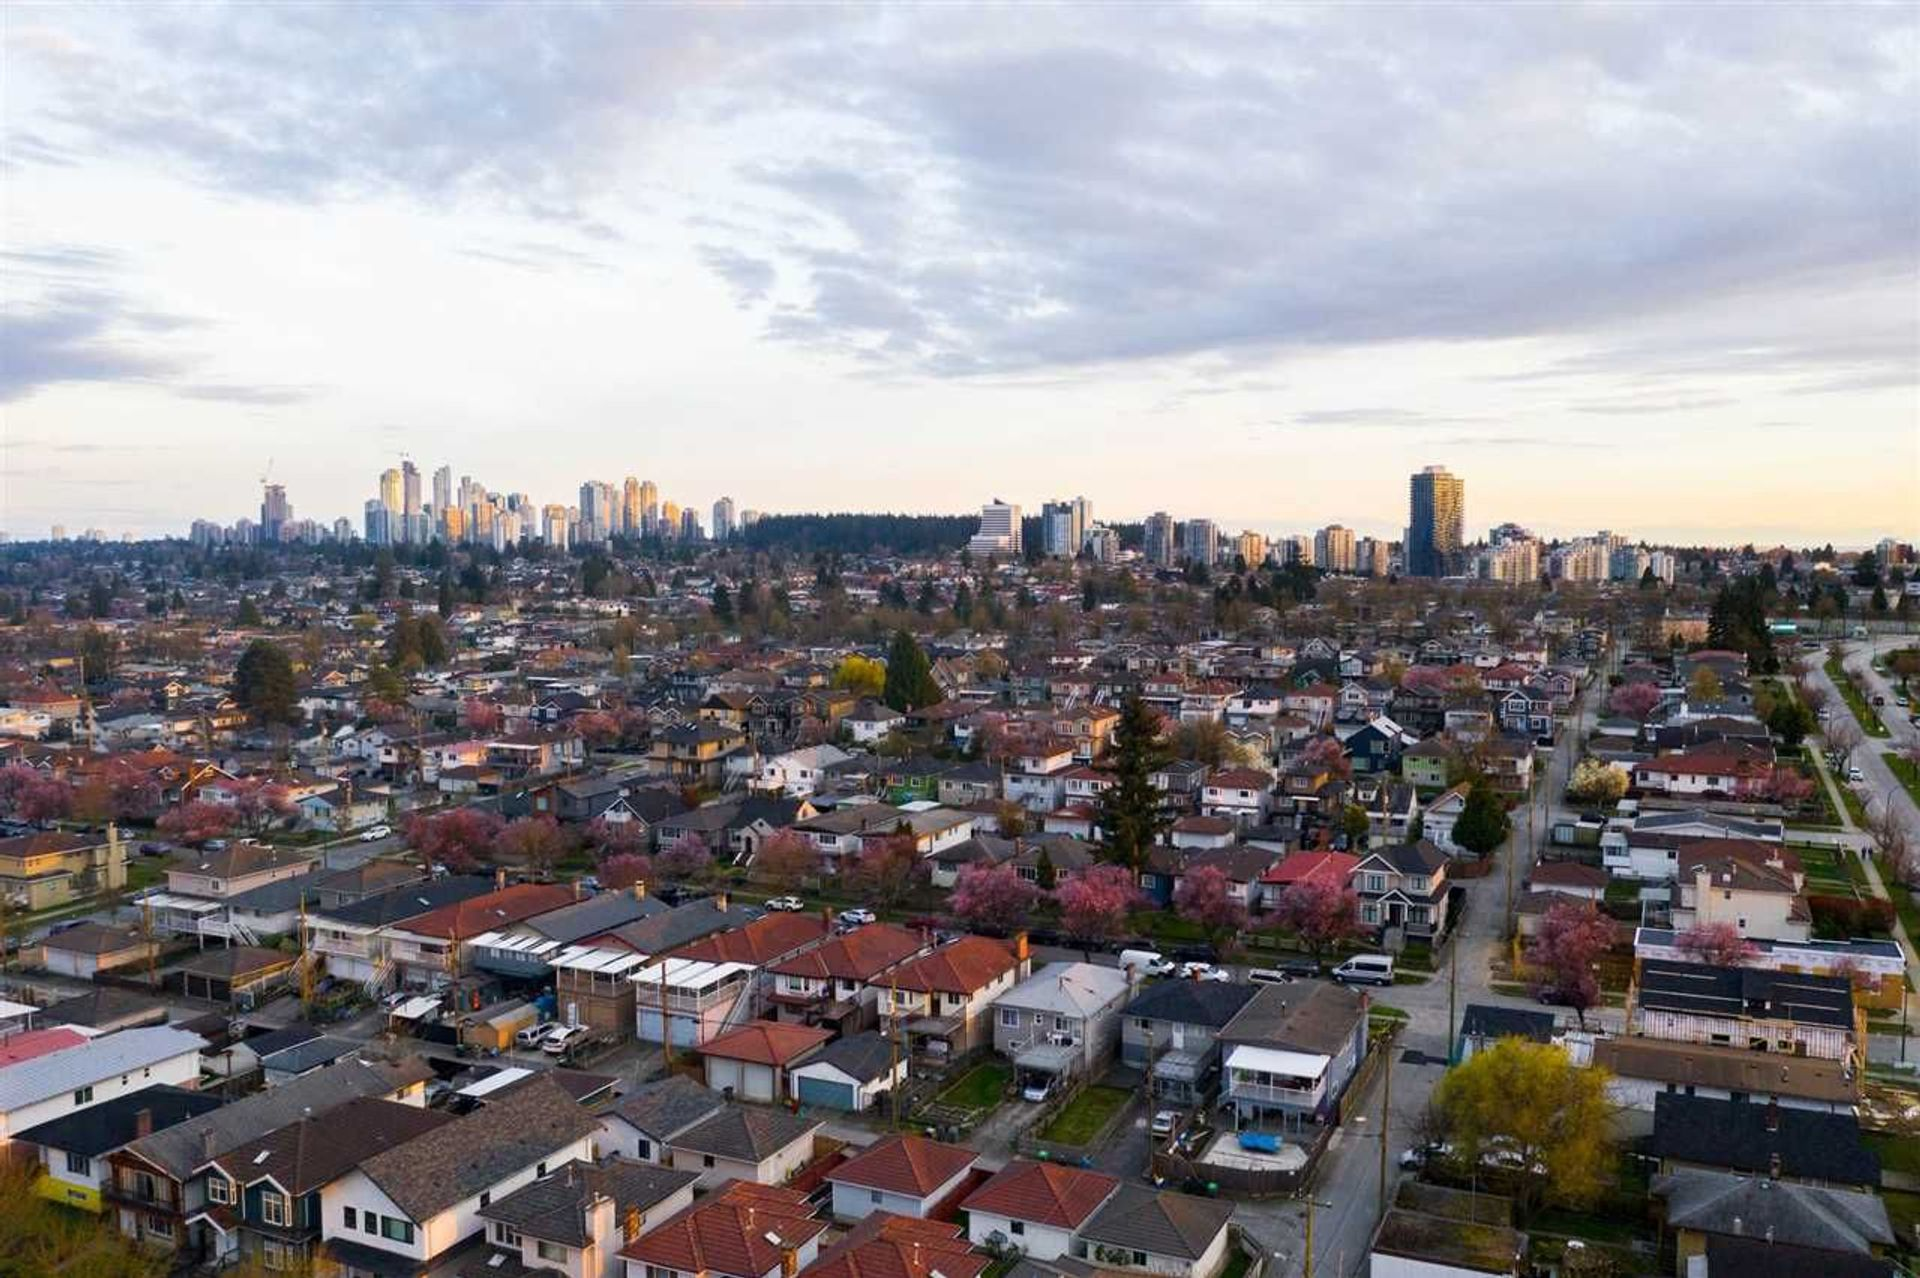 3439-e-24th-avenue-renfrew-heights-vancouver-east-37 at 3439 E 24th Avenue, Renfrew Heights, Vancouver East